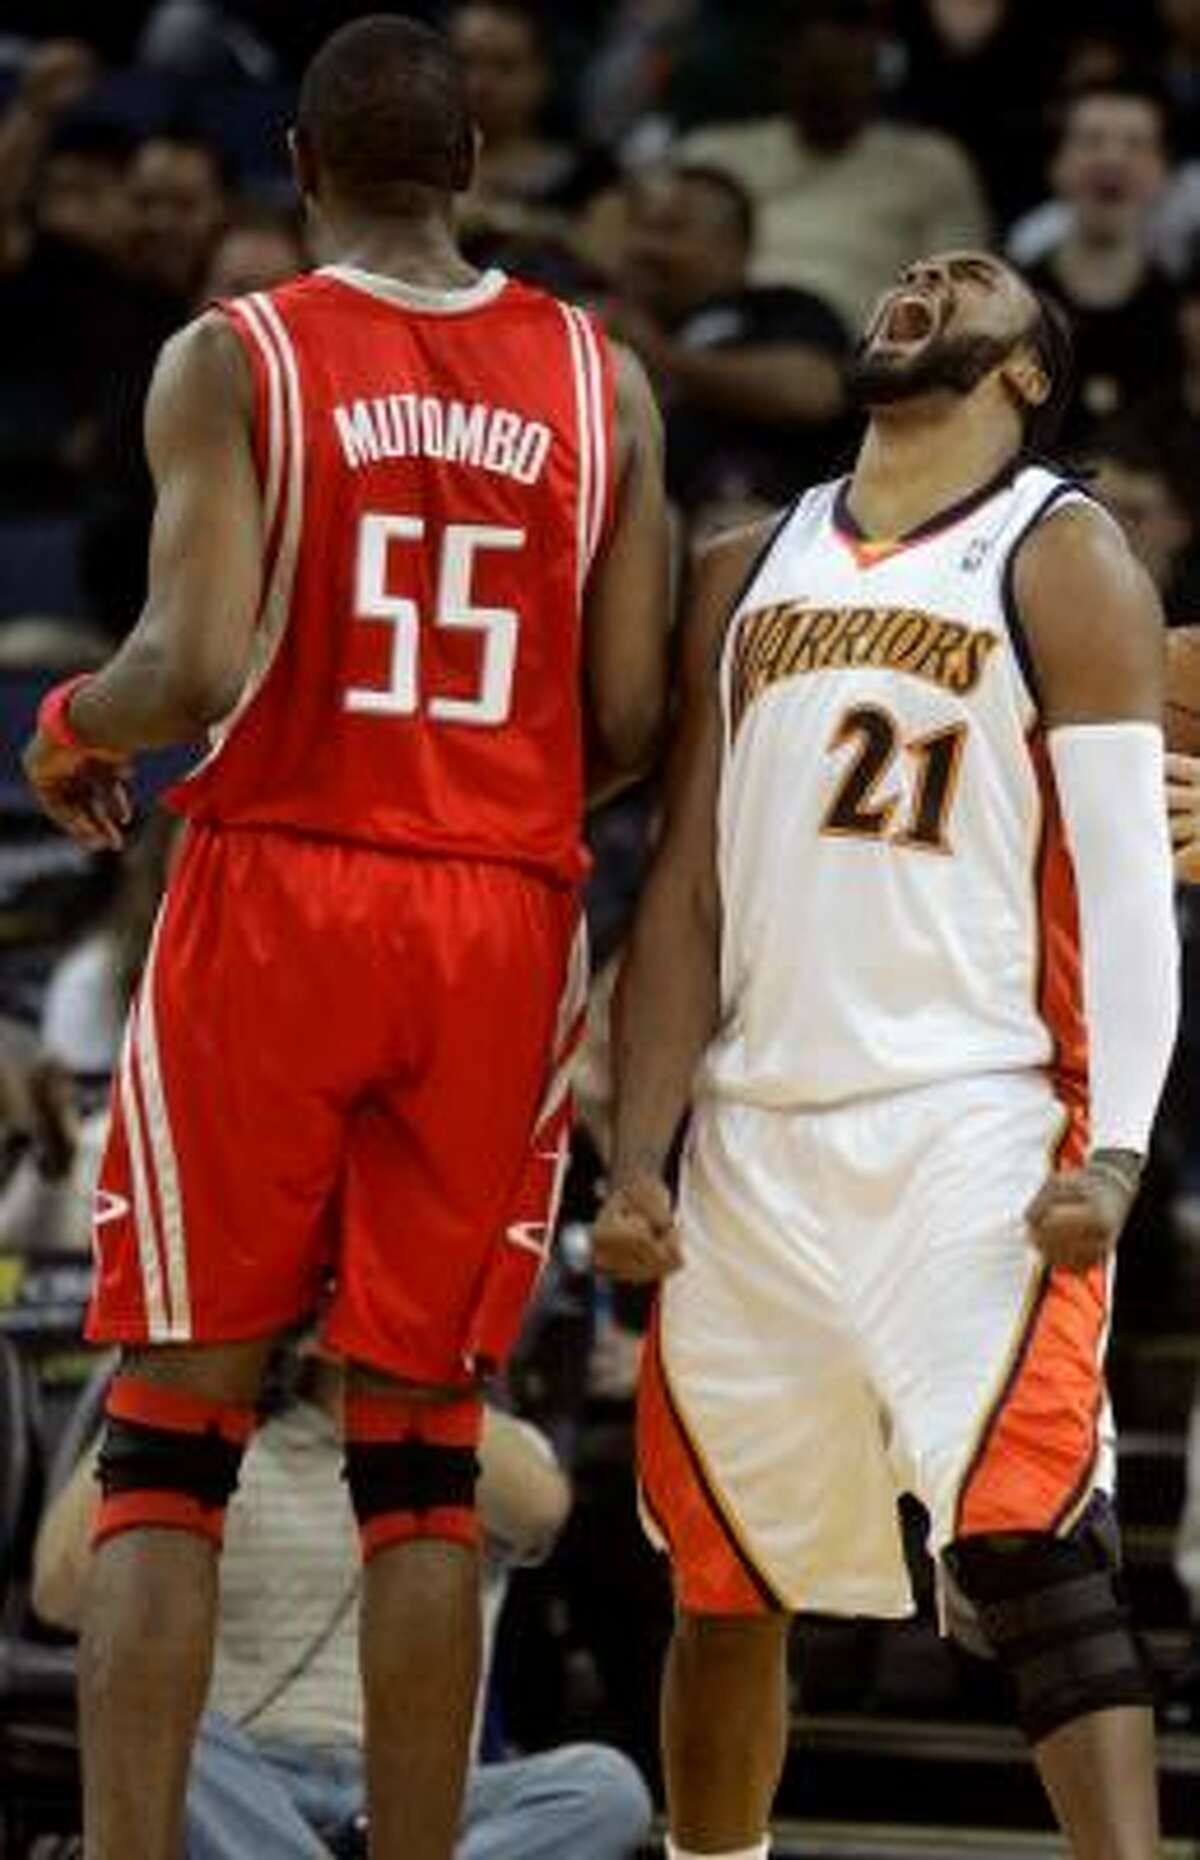 Golden State Warriors forward Ronny Turiaf (21) yells after making a basket next to Rockets center Dikembe Mutombo (55) in the third quarter.